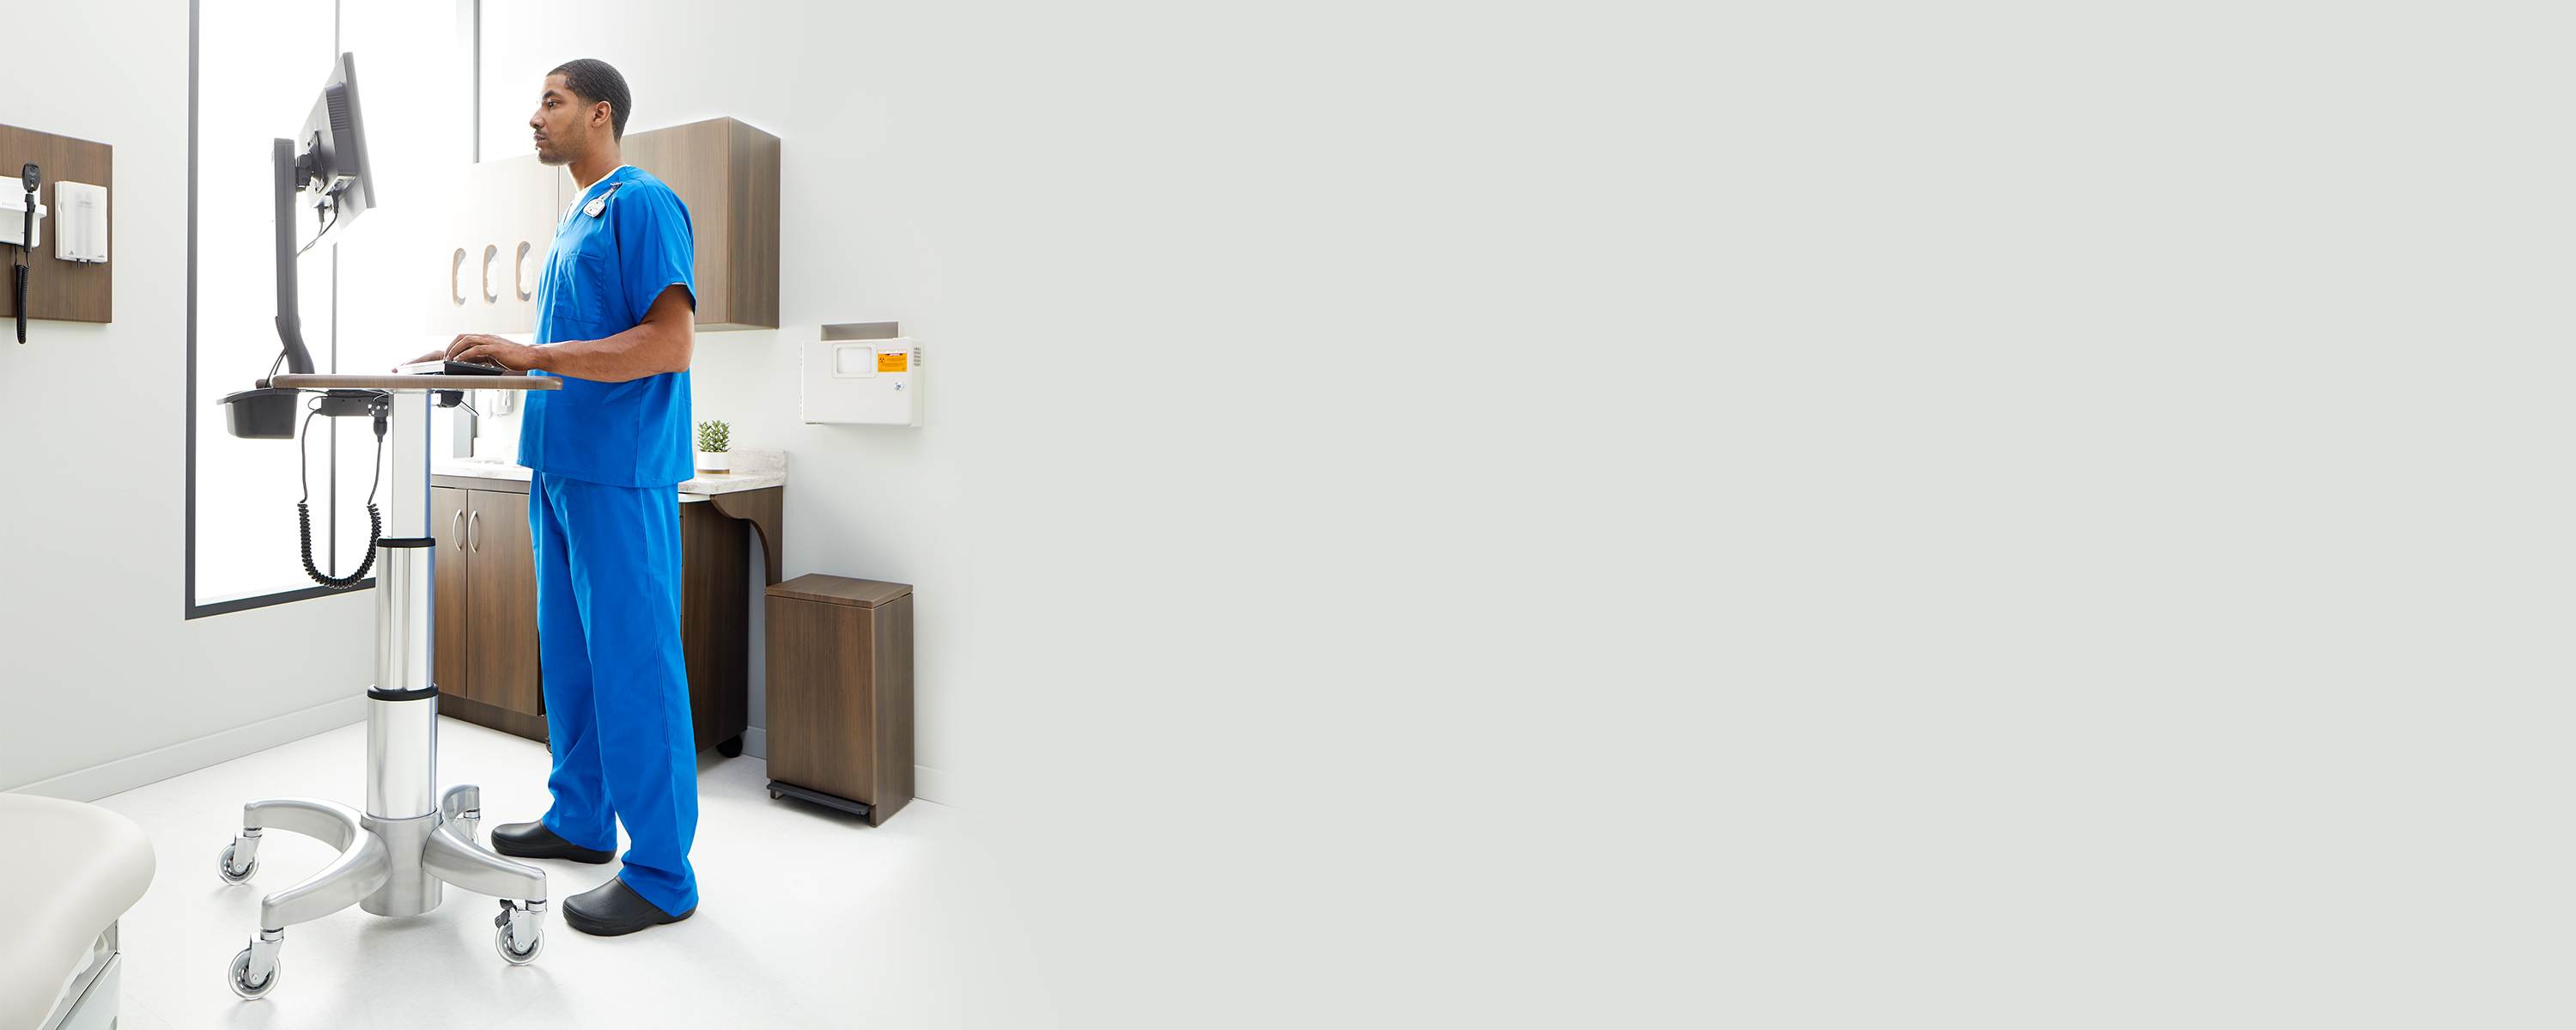 workstations-category-second-banner